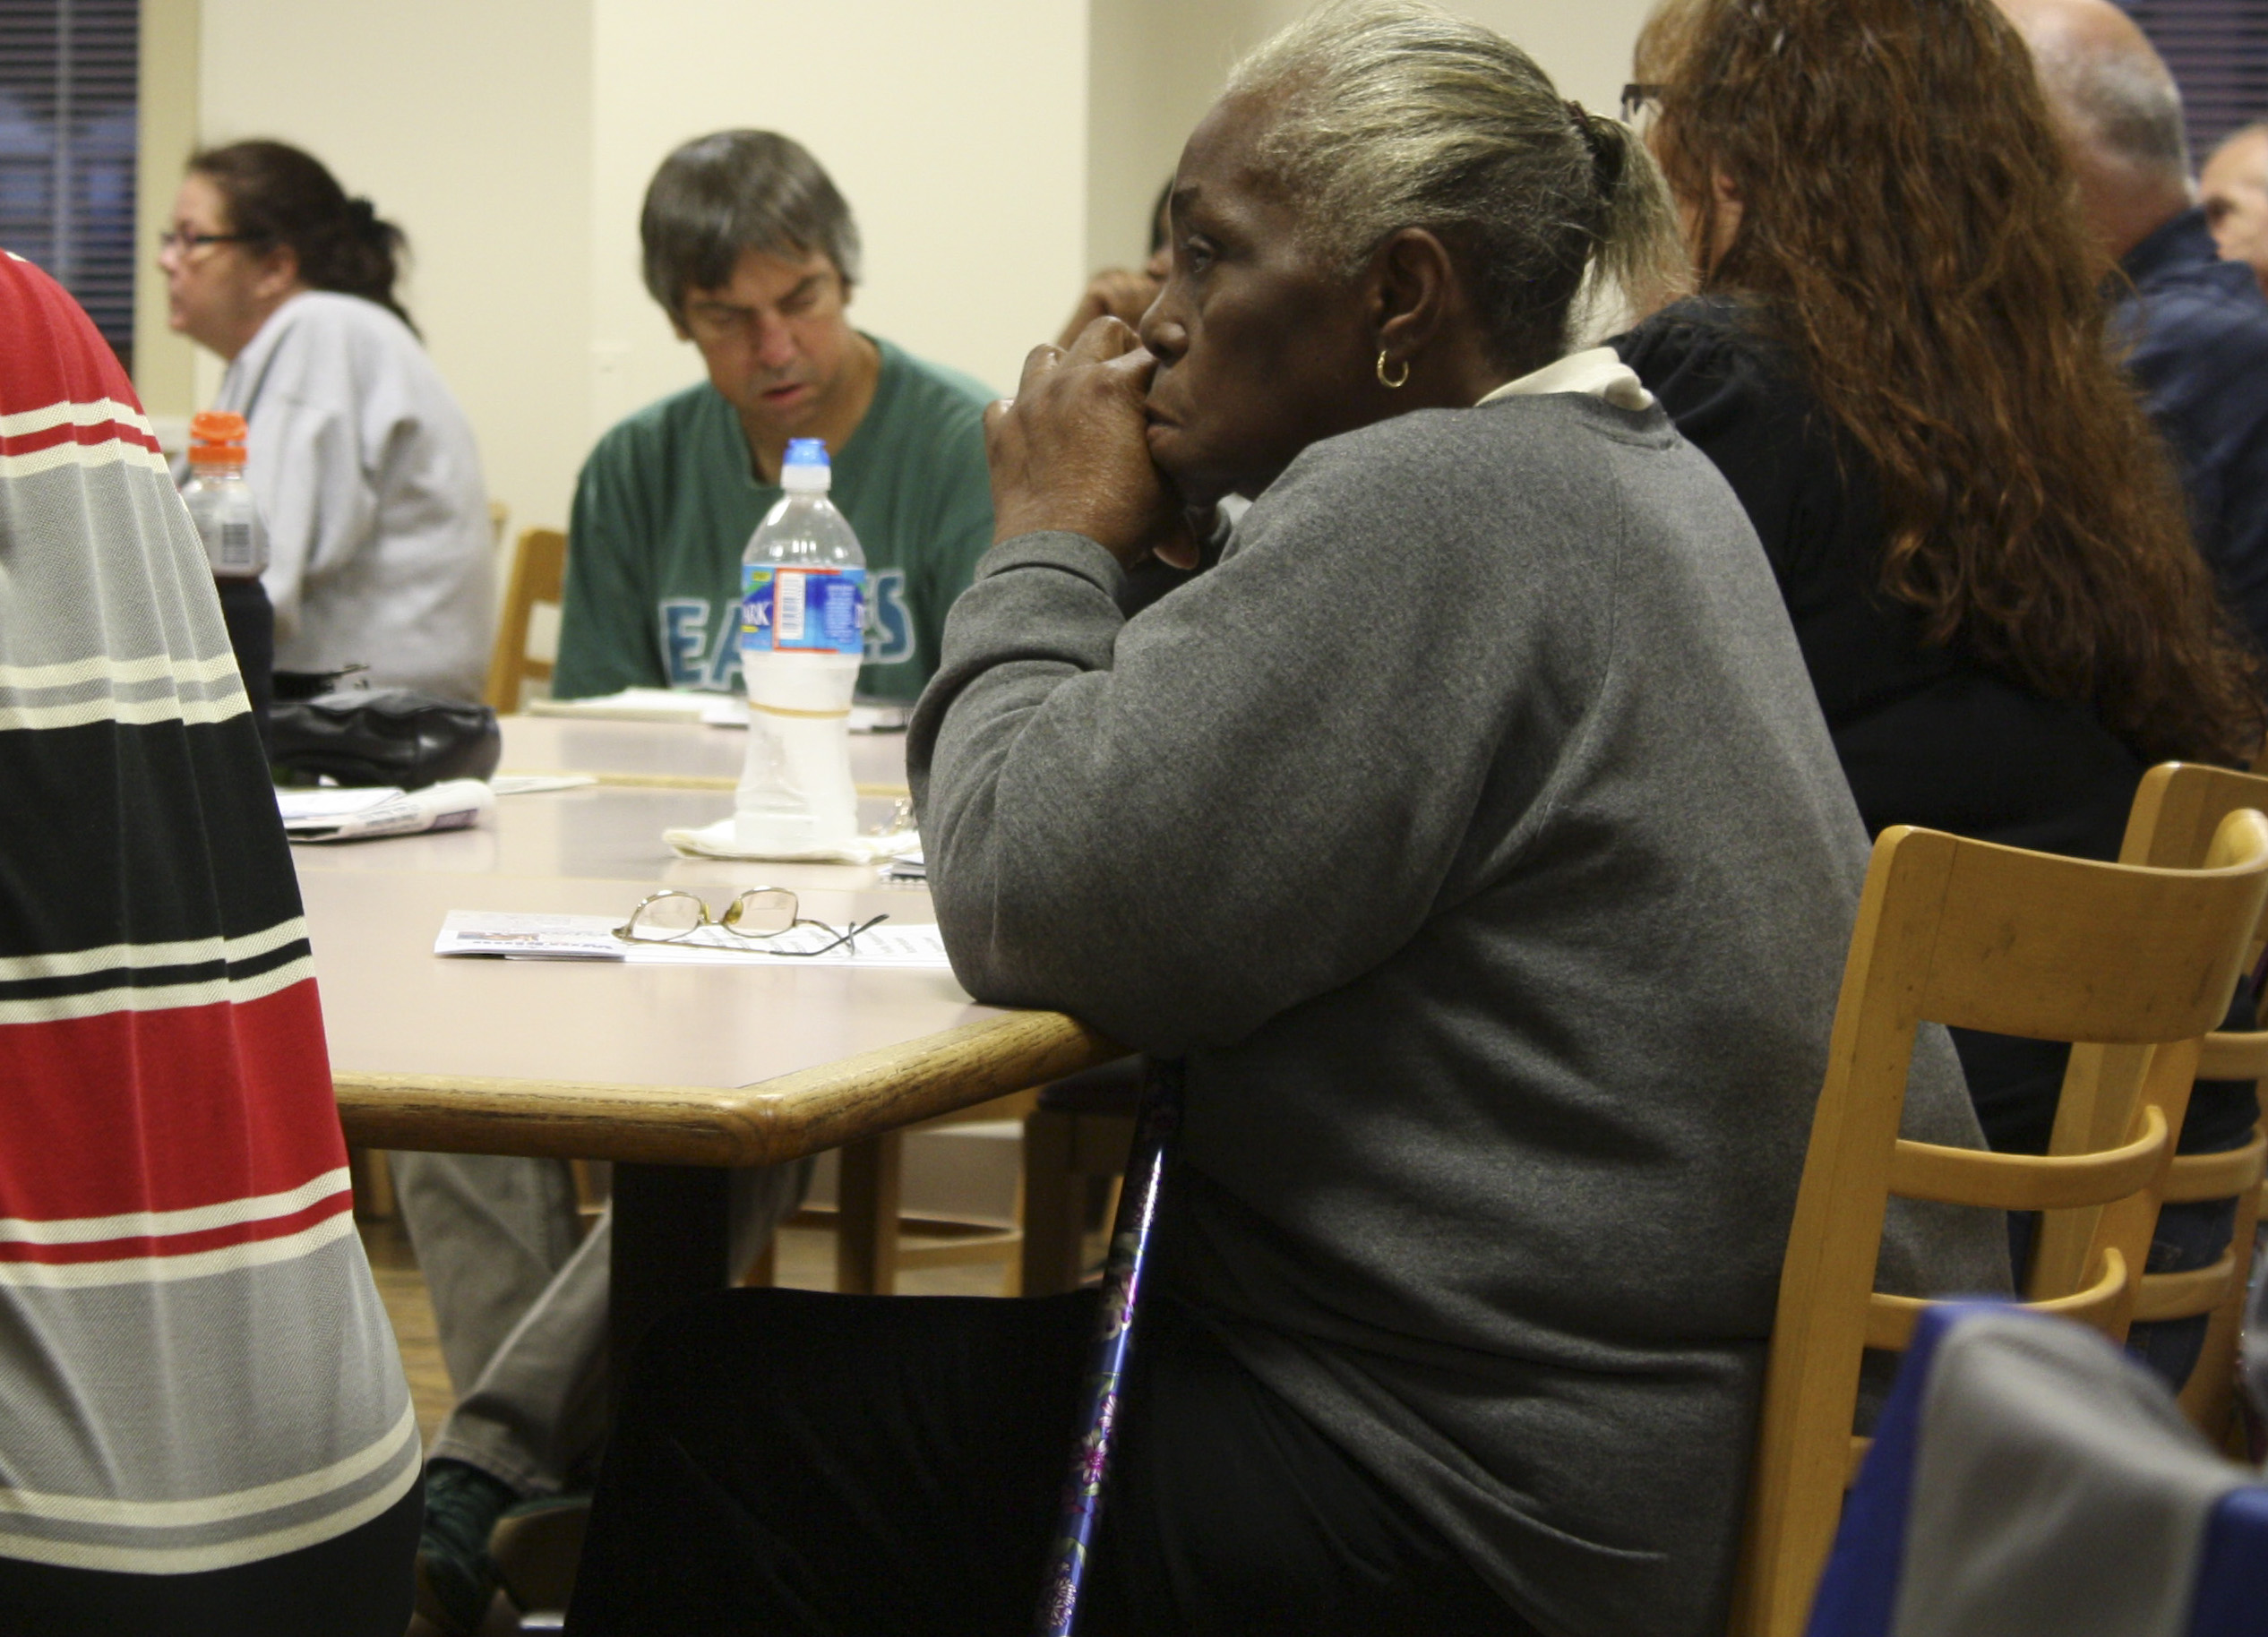 Many residents were dissatisfied by the lack of progress being made.